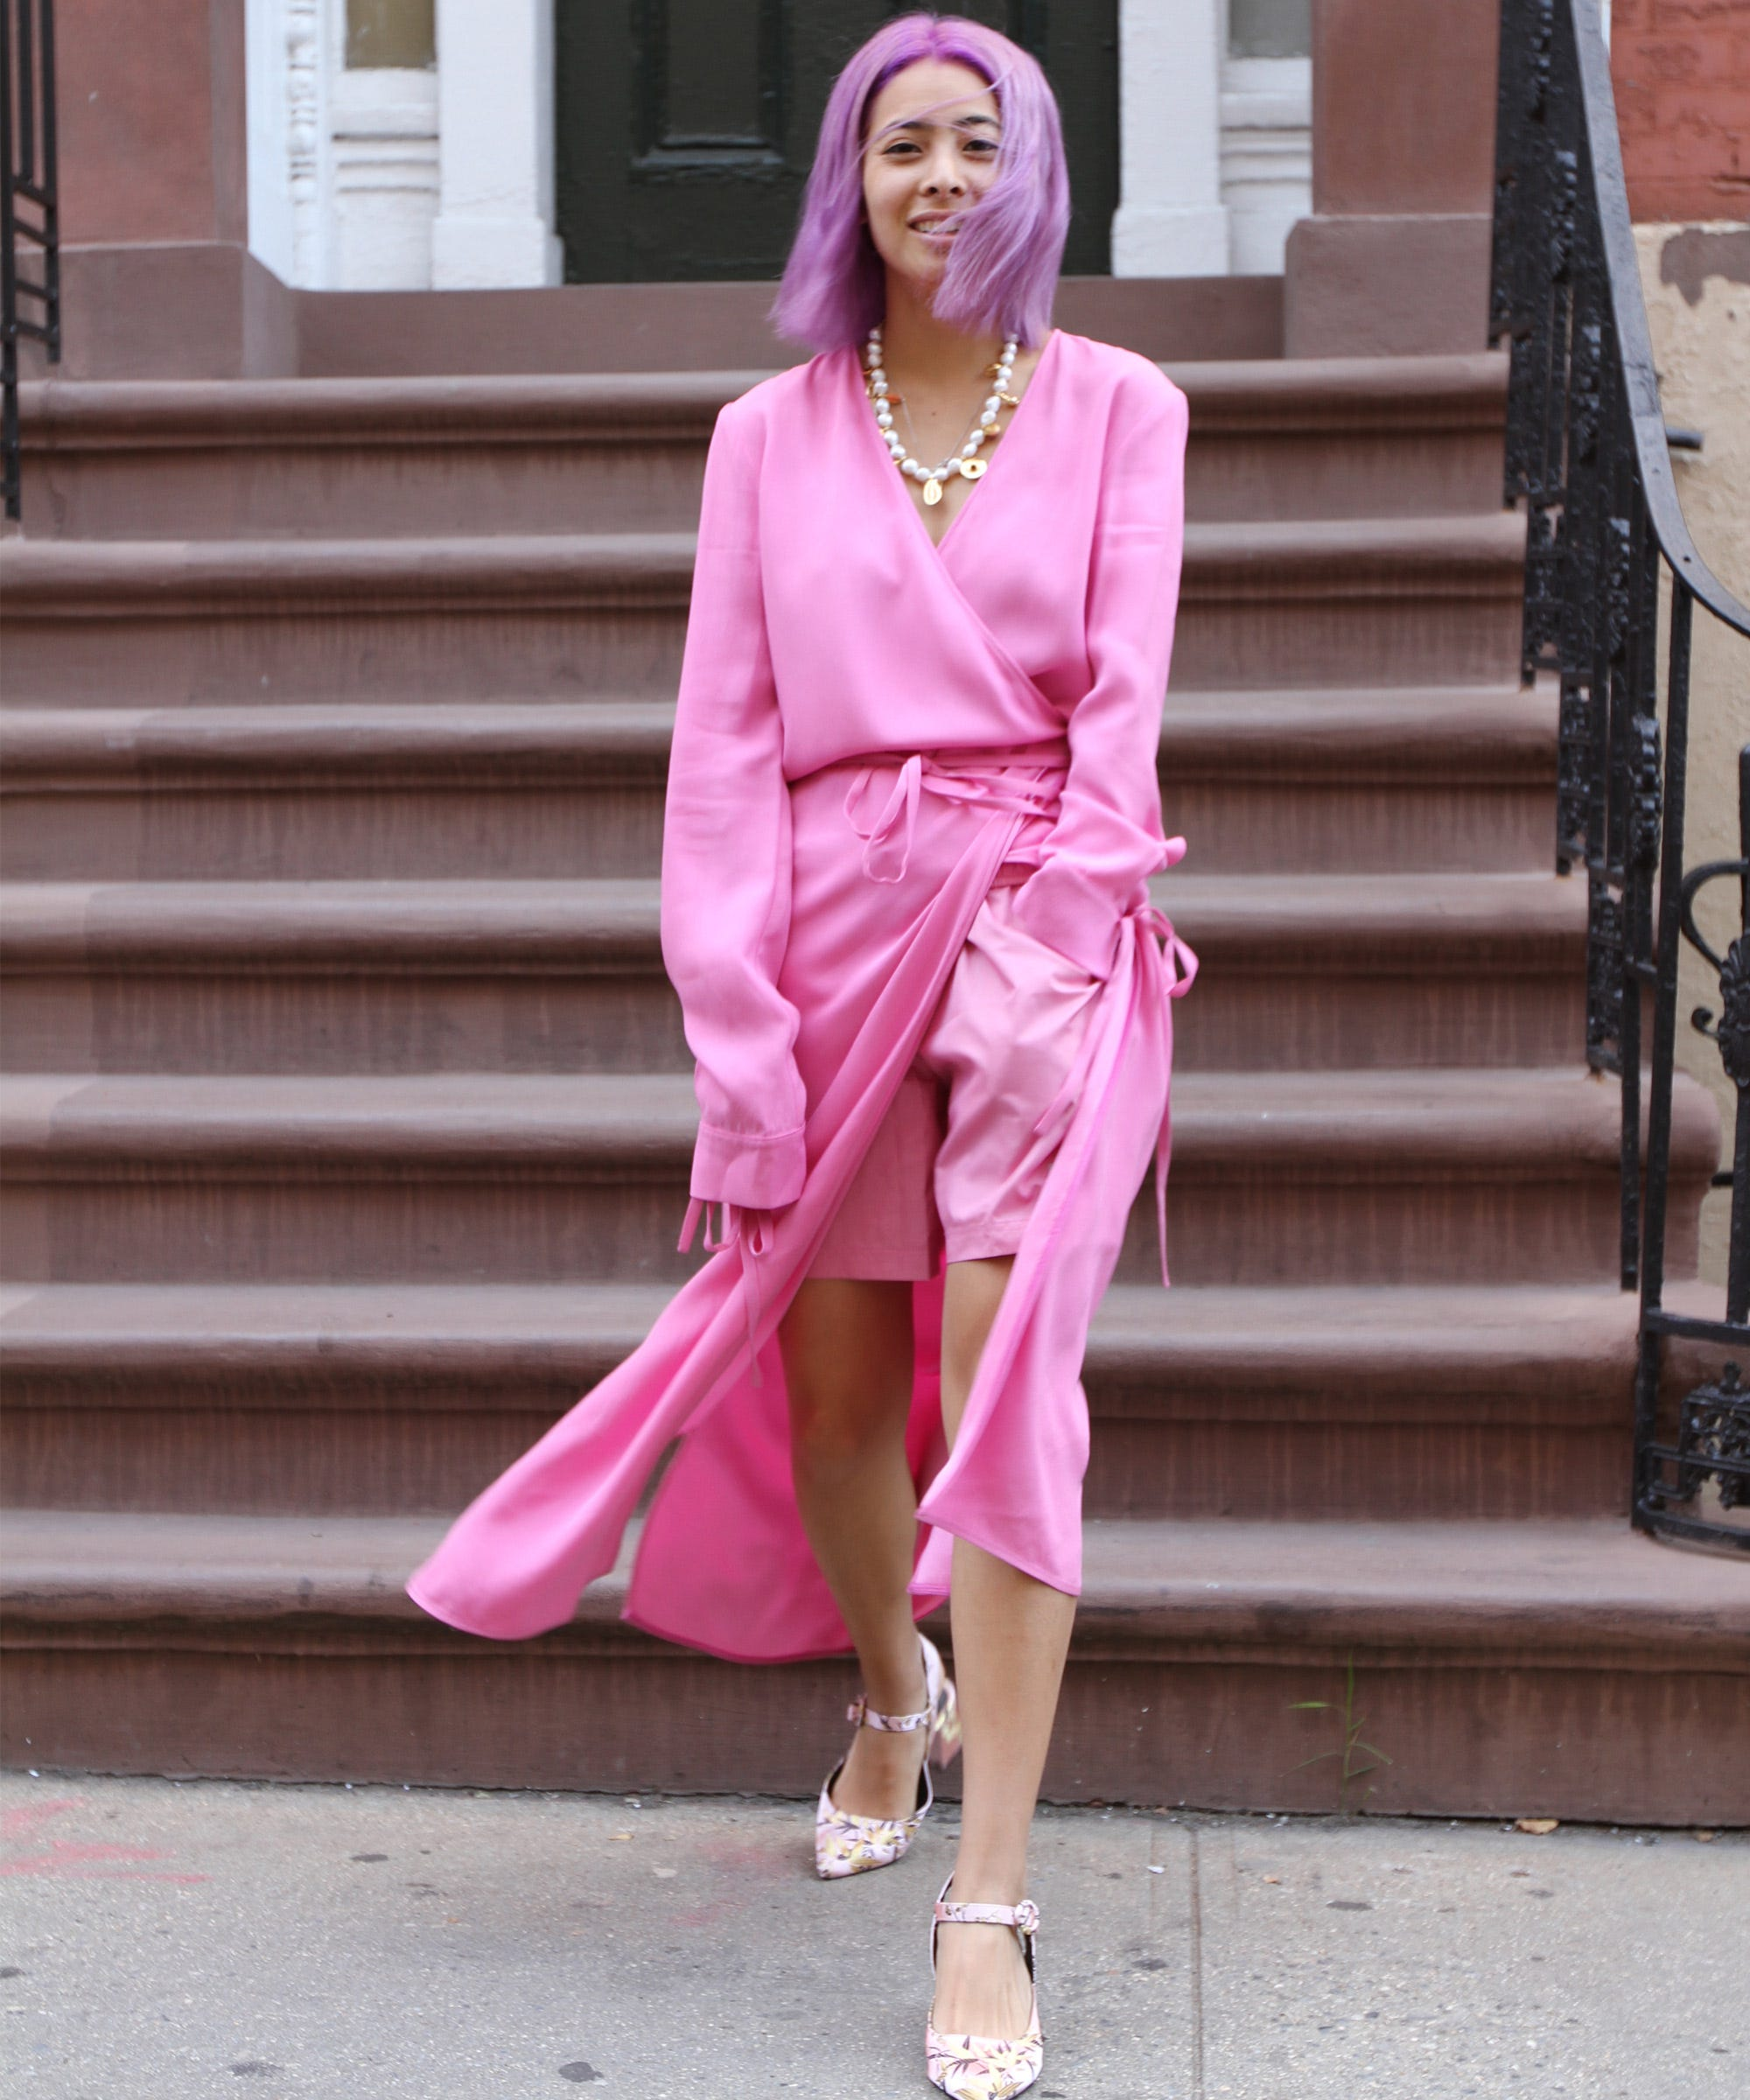 Leandra Medine Shares Her Necklace Layering Tips